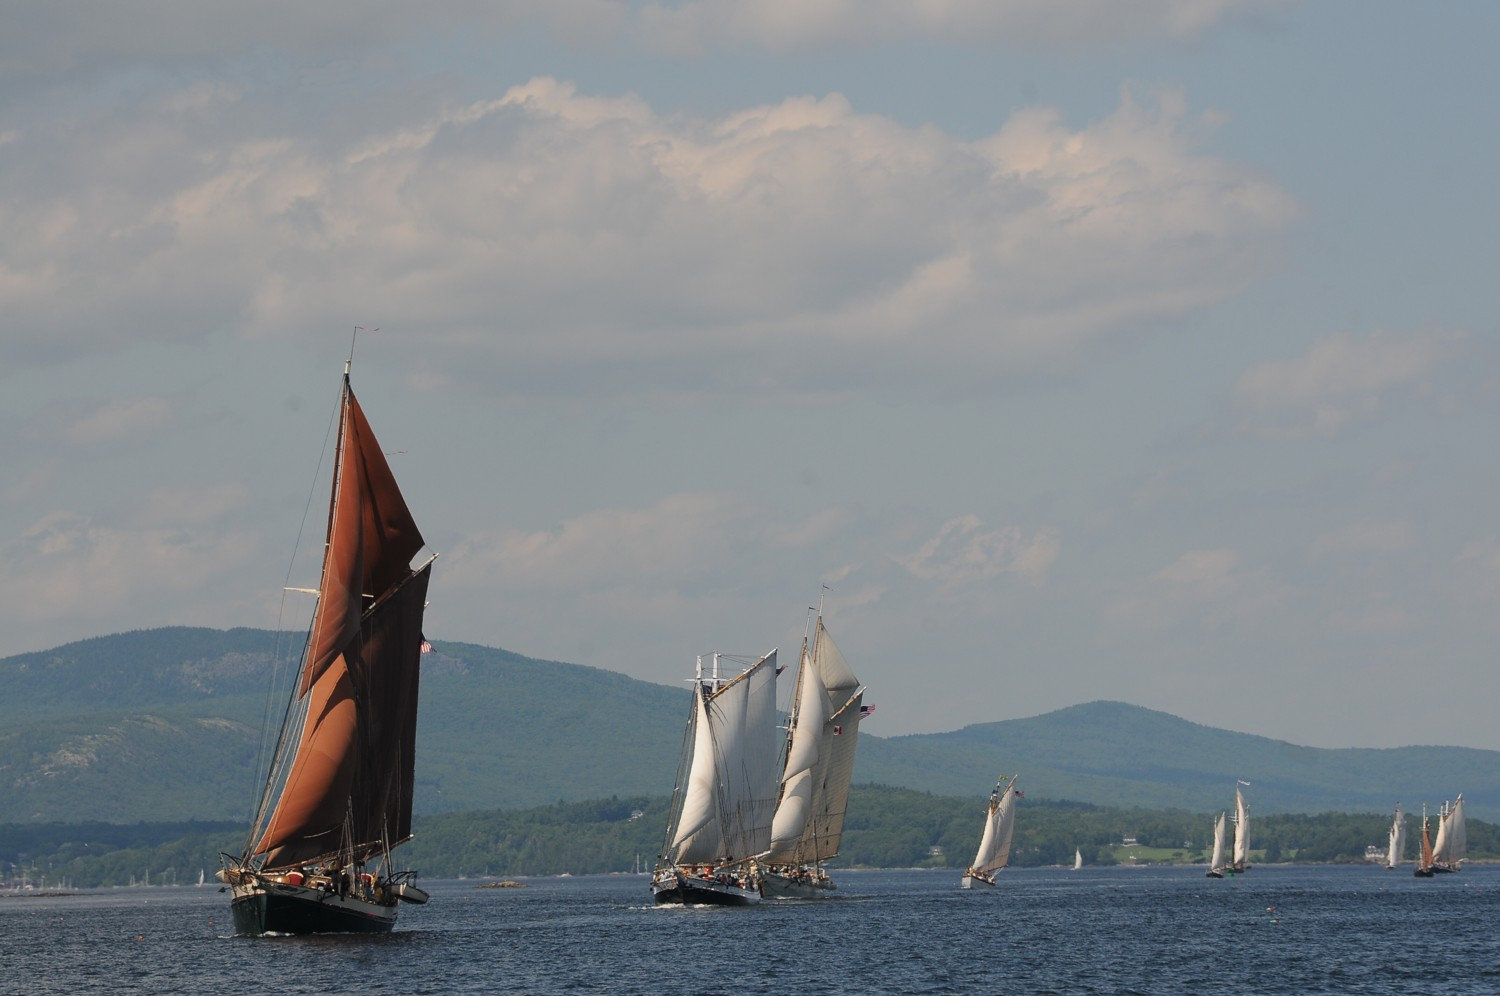 Coming down the home stretch: historic Maine windjammers make quite a sight as they dash for the Rockland Lighthouse at the end of the Great Schooner Race © 2016 Karen Rubin/news-photos-features.com